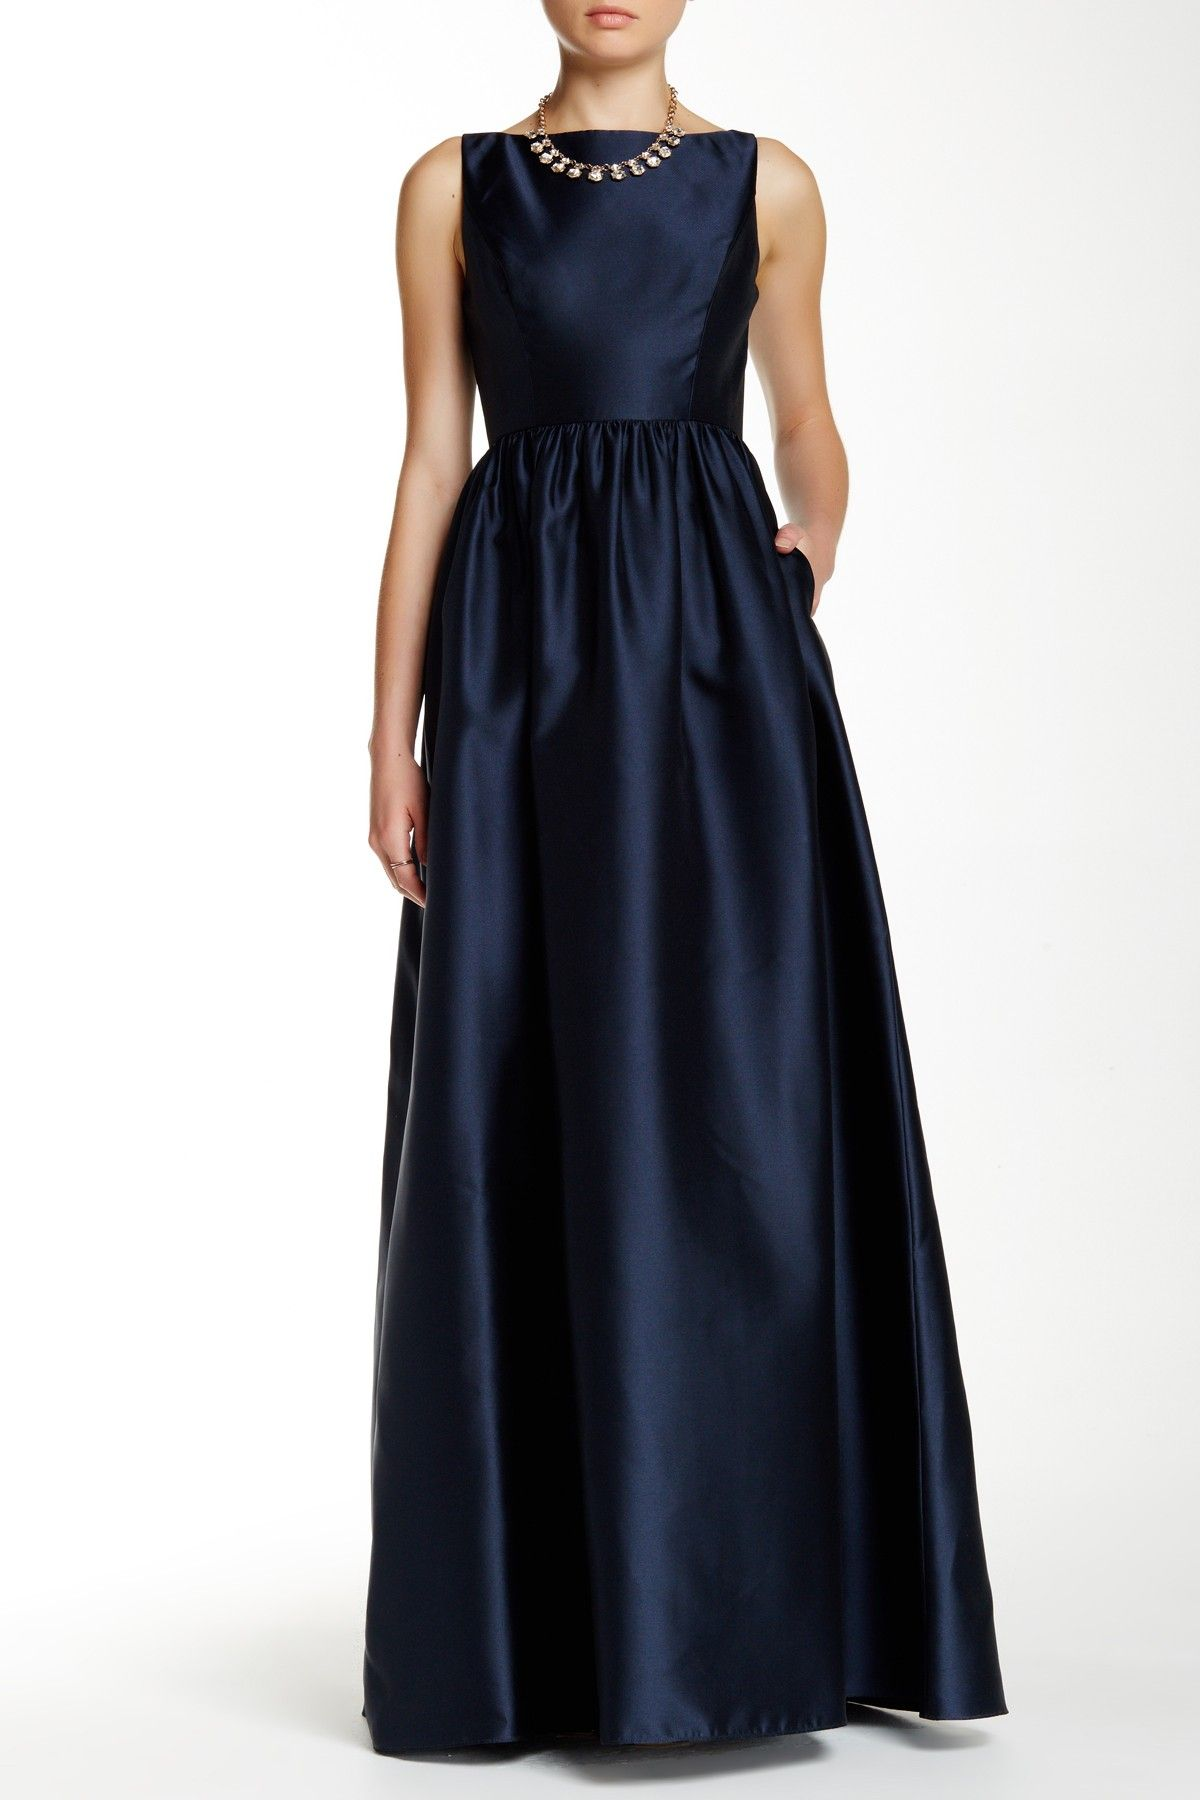 Sleeveless Mikado Ballgown | Adrianna papell, Nordstrom and Gowns